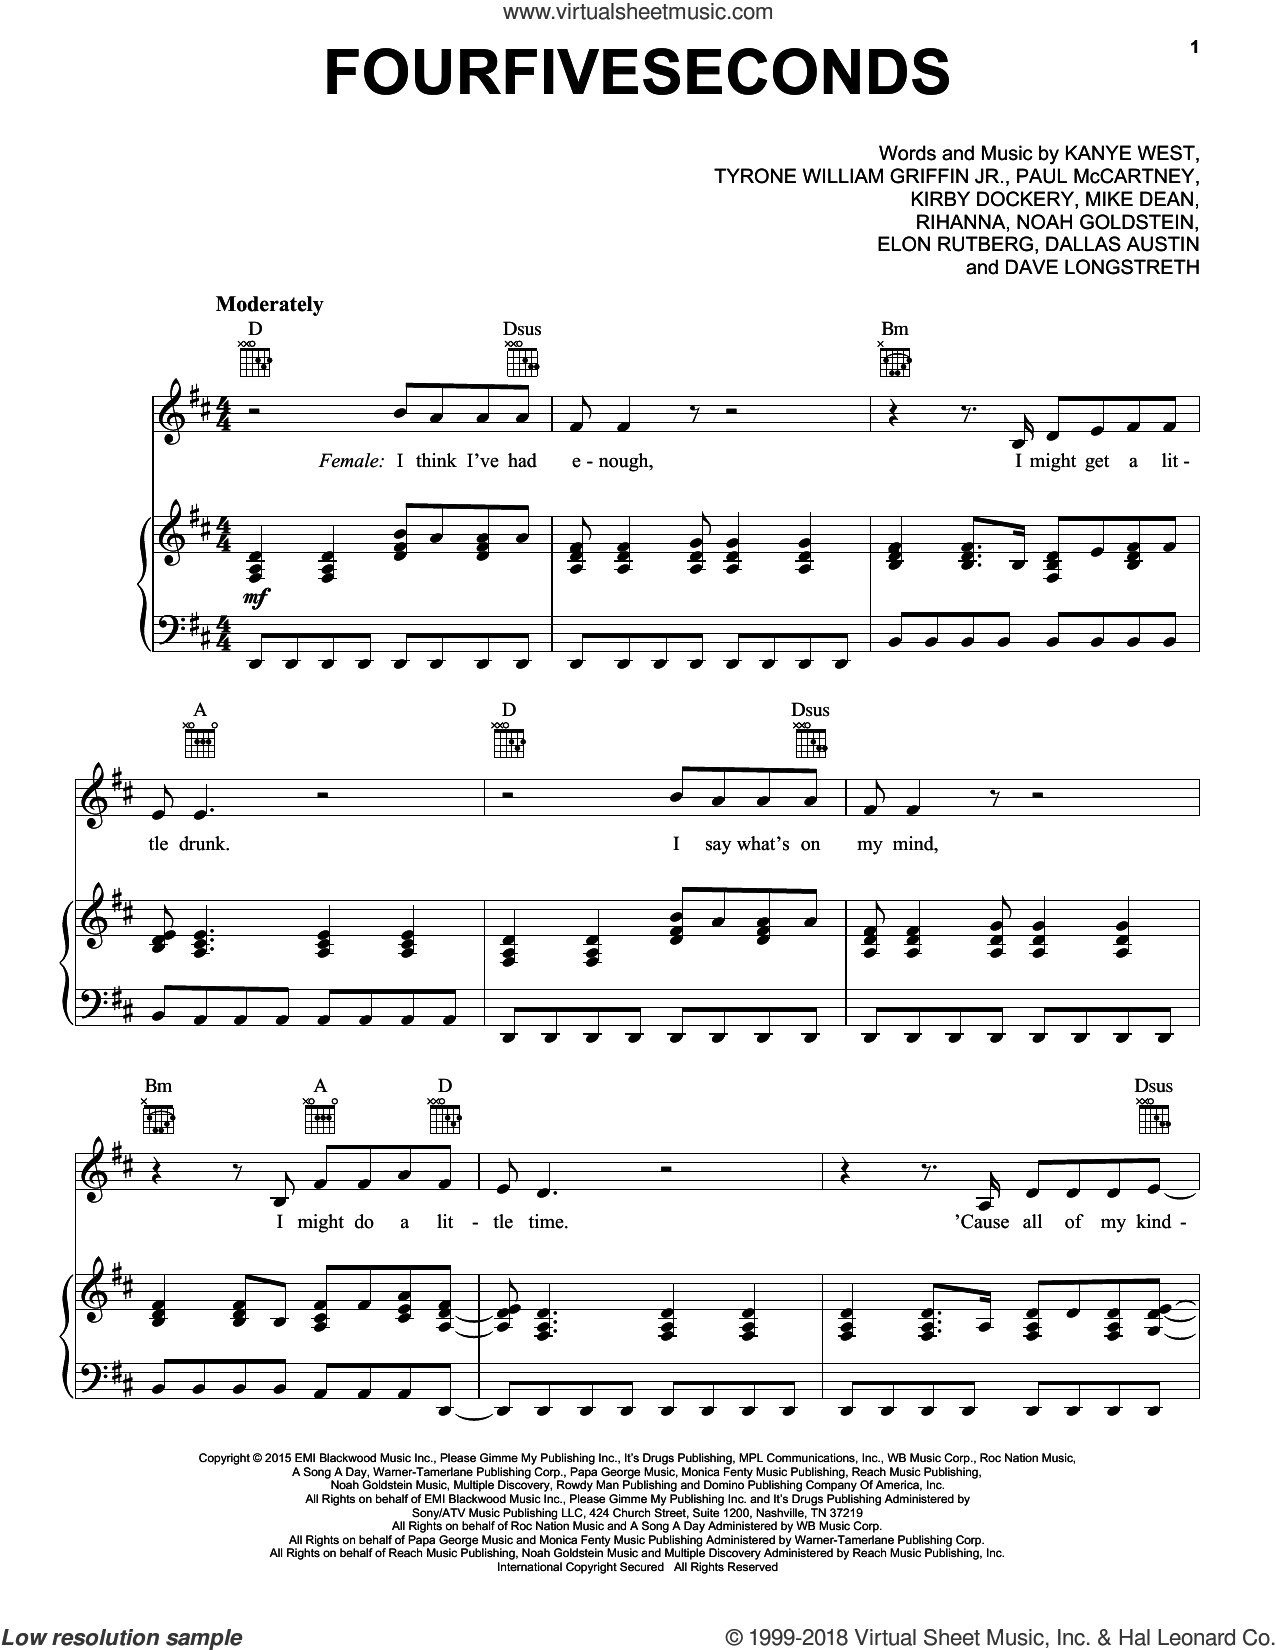 FourFiveSeconds sheet music for voice, piano or guitar by Tyrone William Griffin Jr.